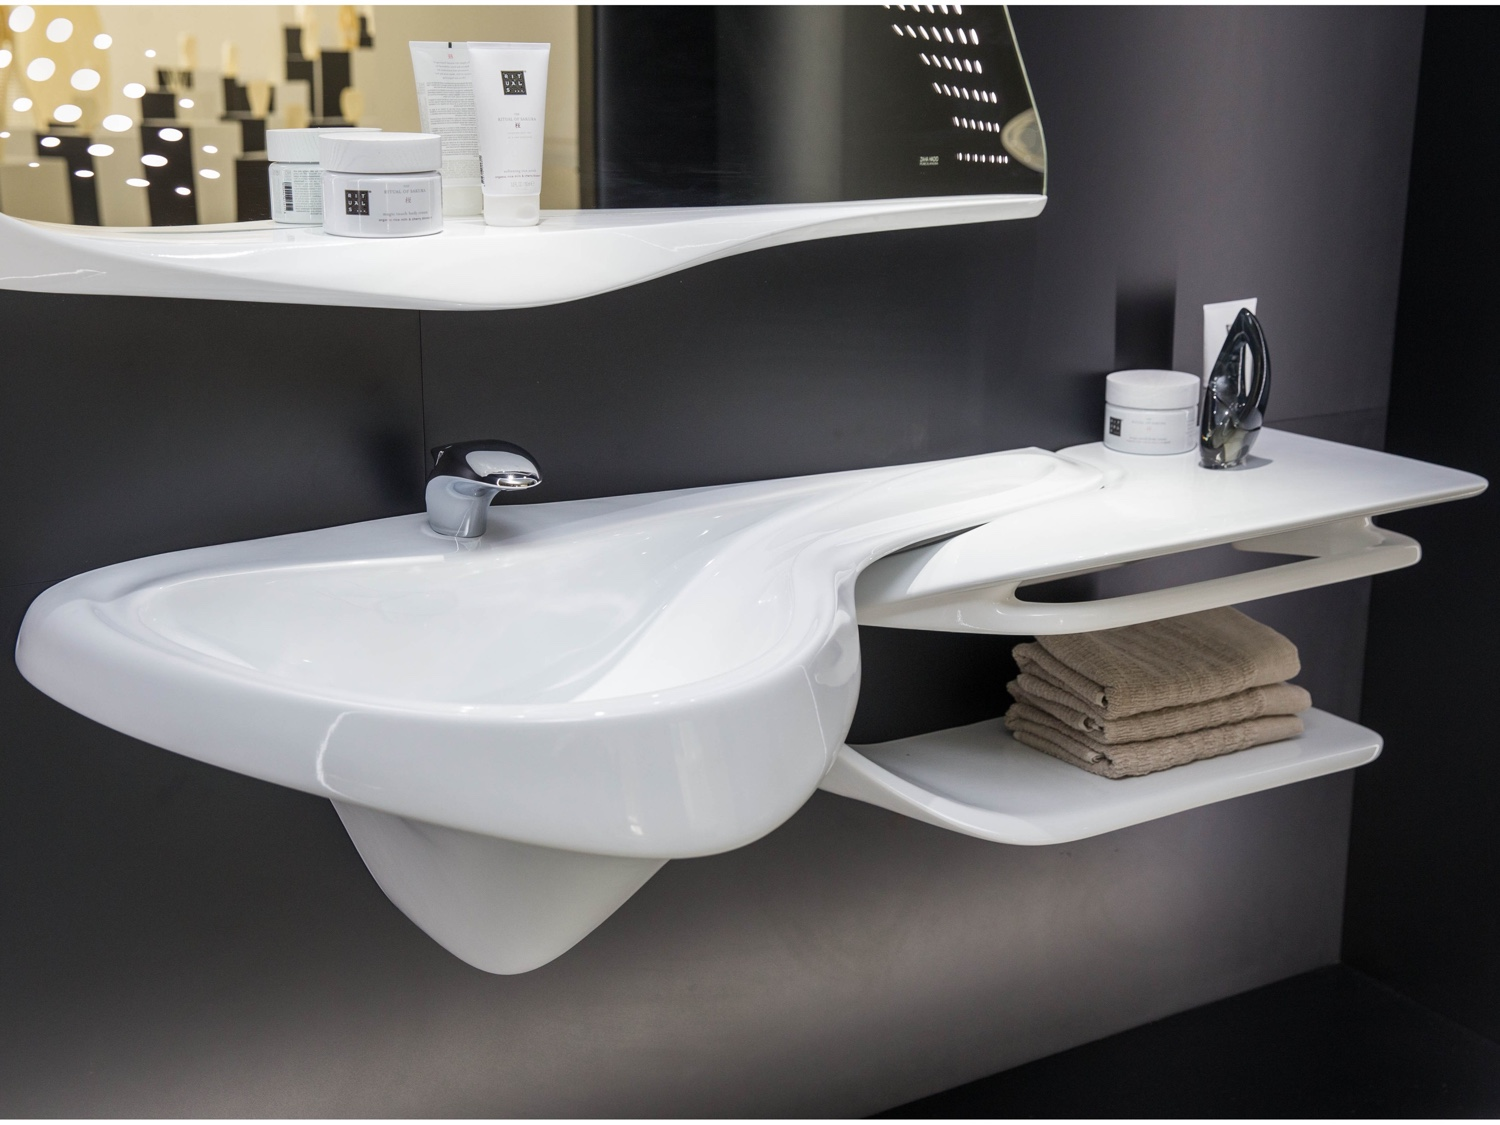 Viate-washbasin-with-integrated-countertop